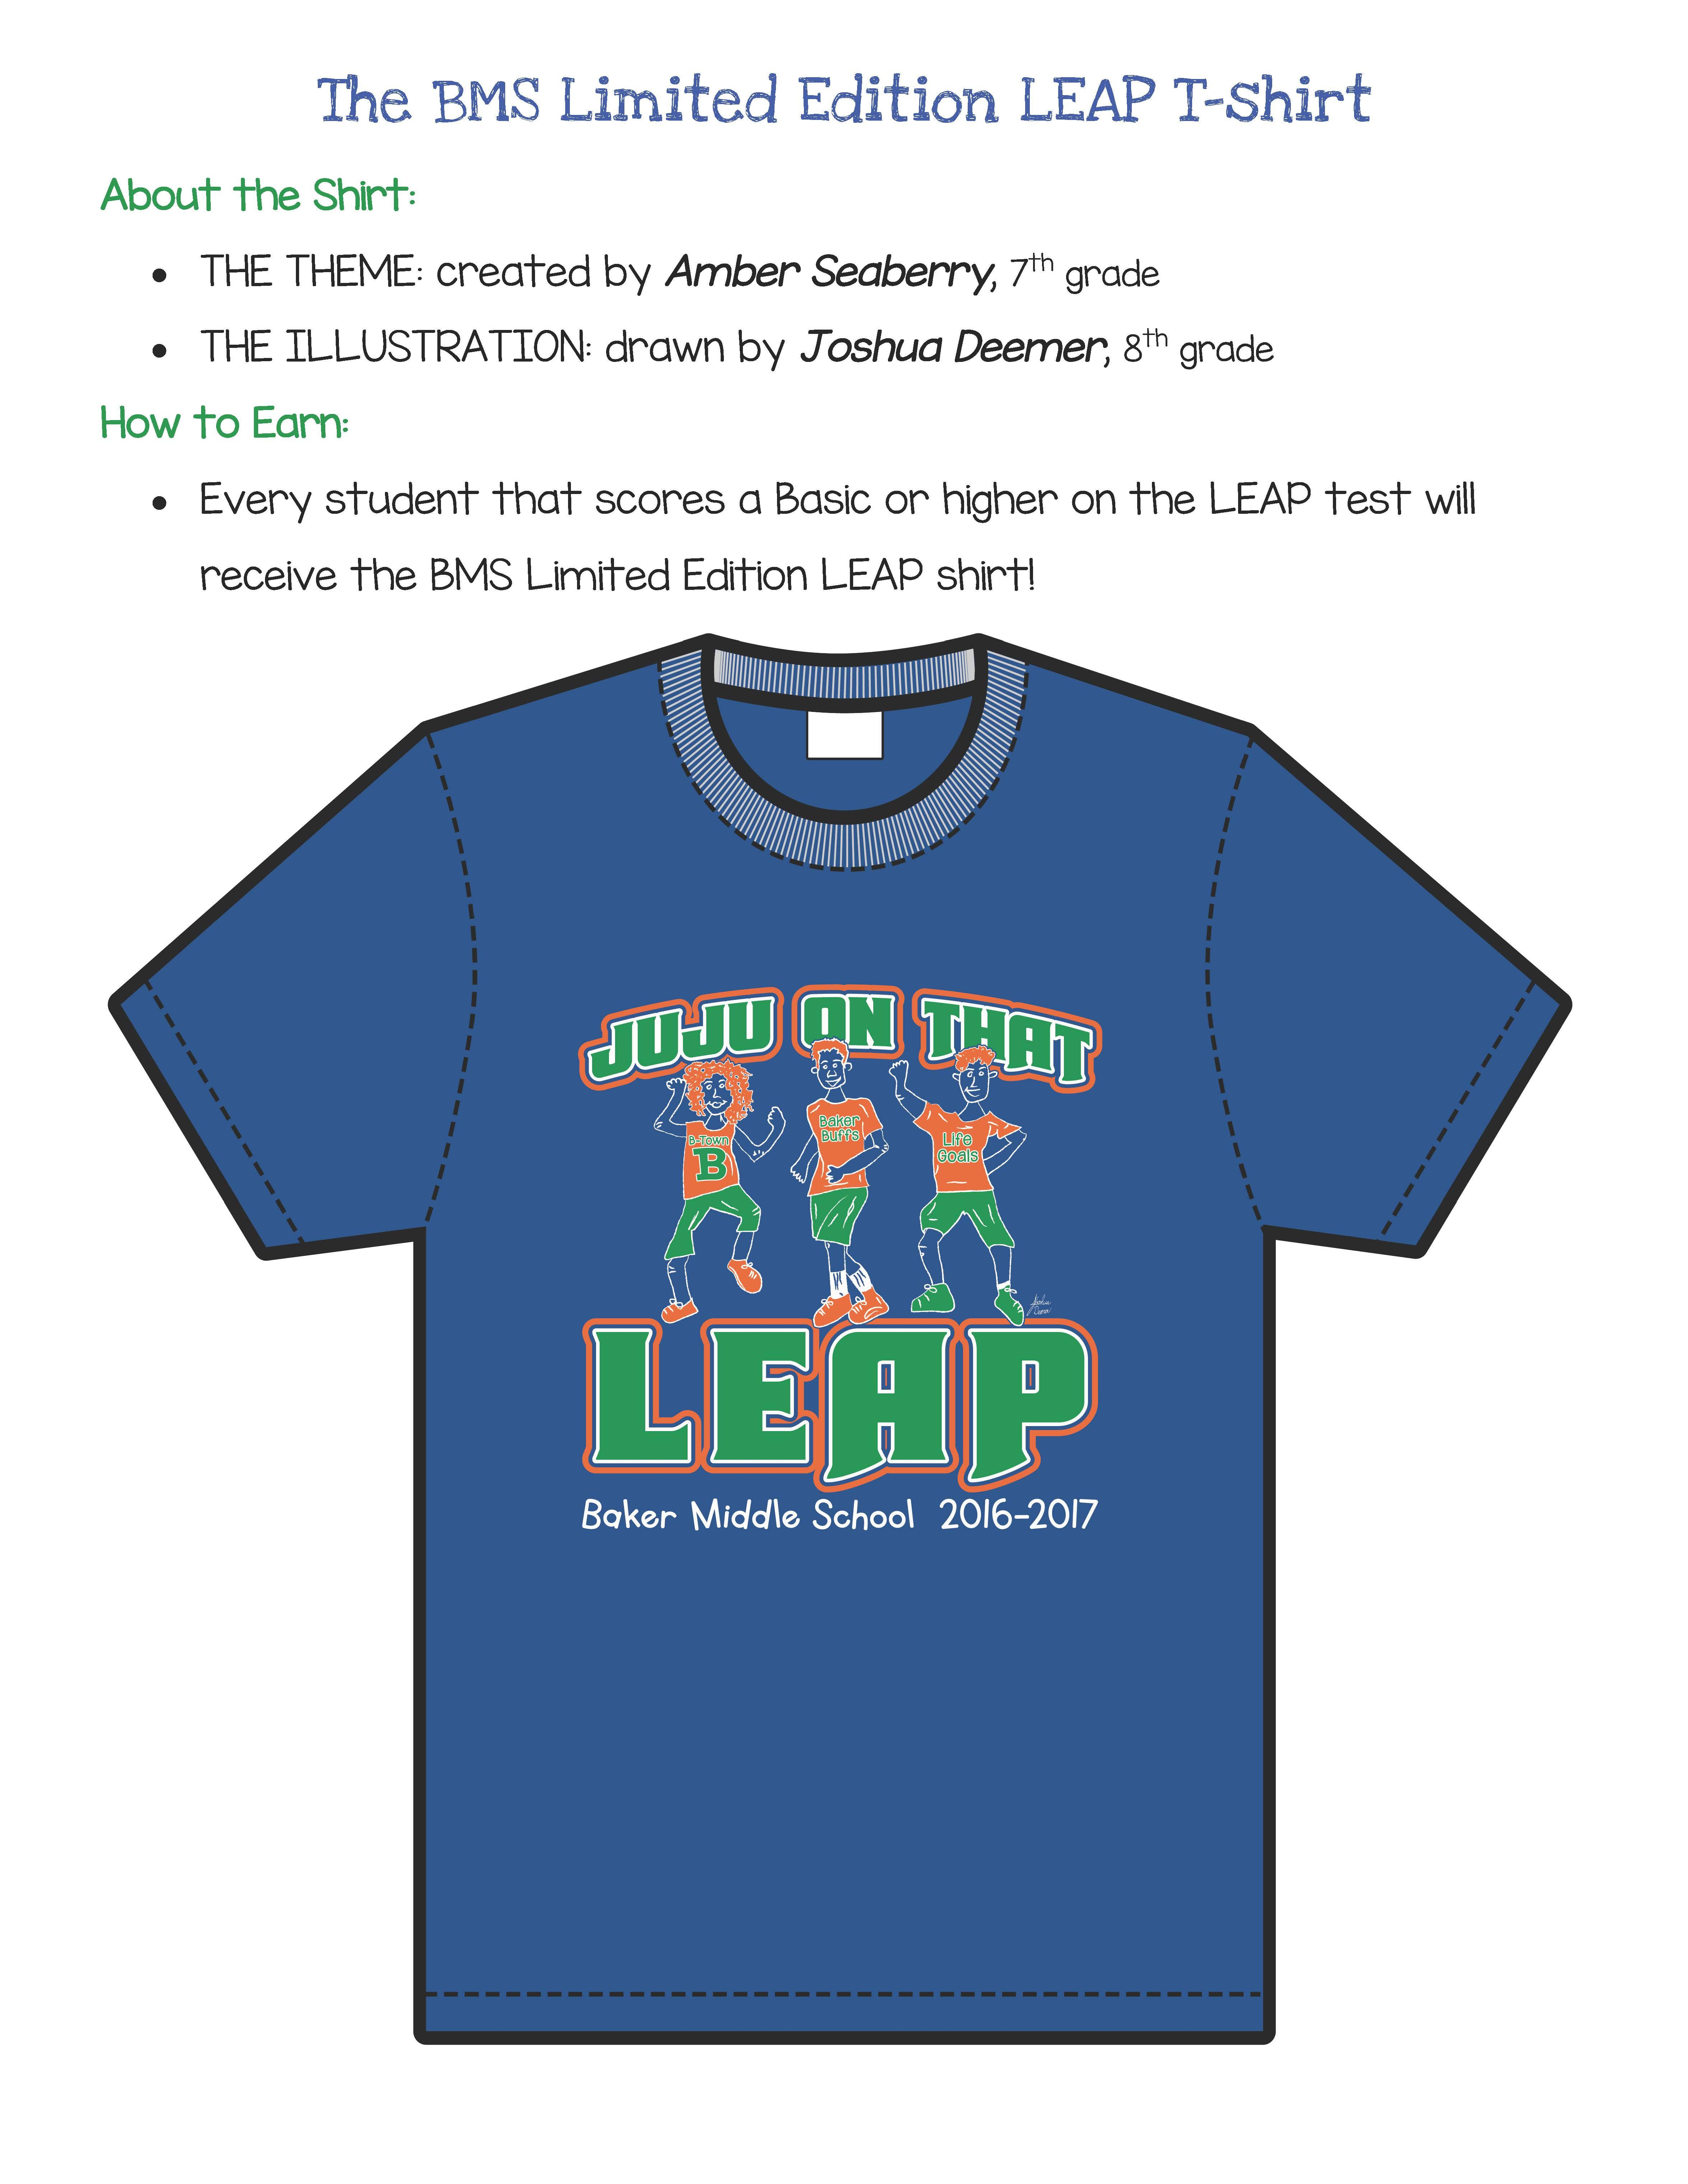 Baker Middle LEAP TShirt Contest Results in Graphic